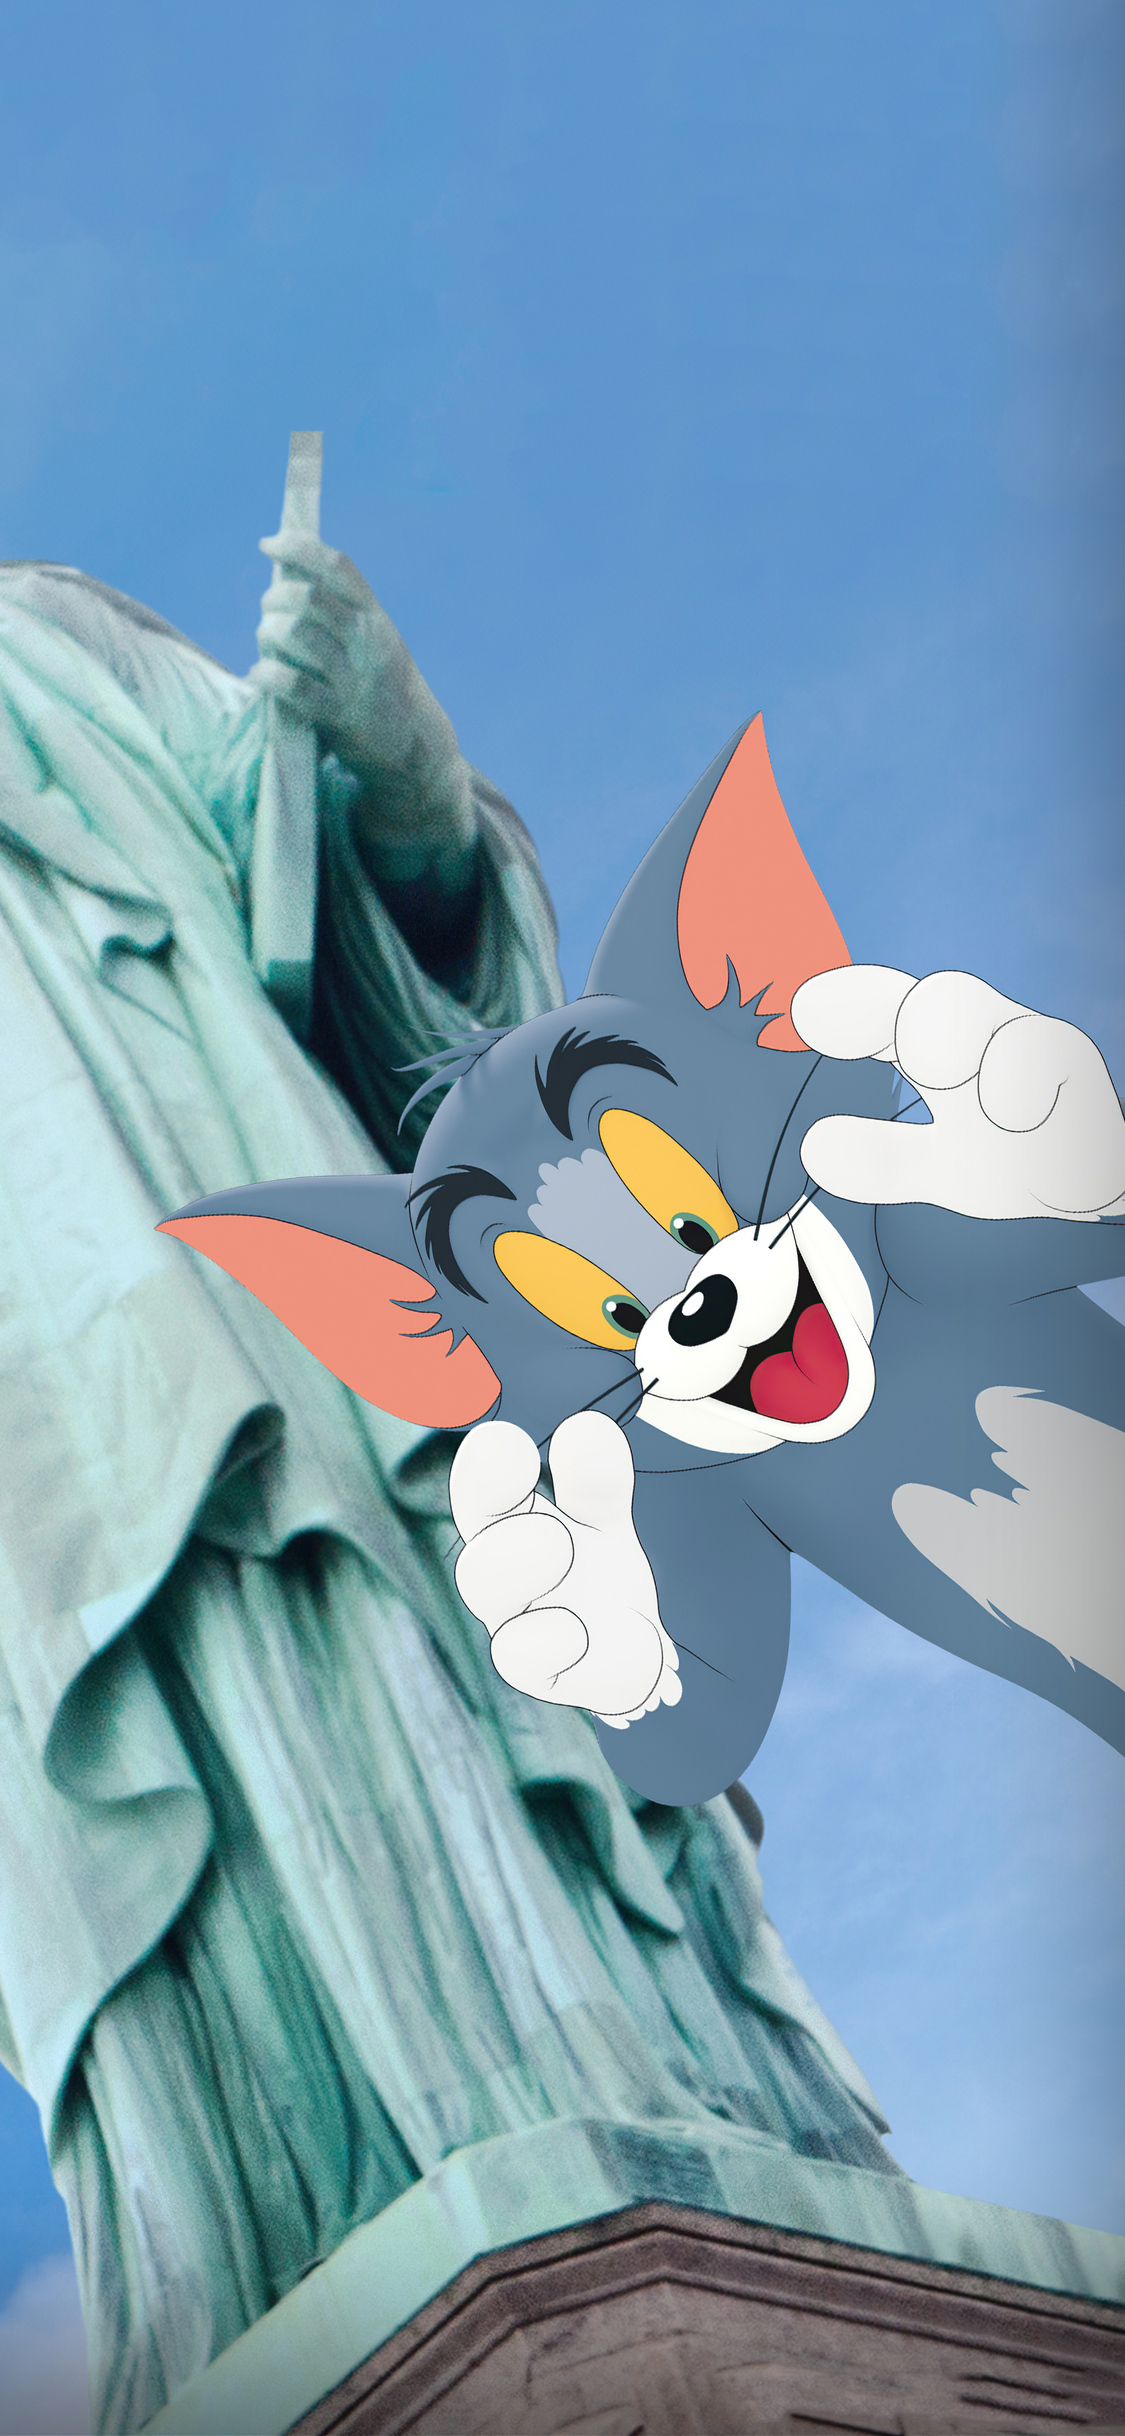 tom-and-jerry-2021-1y.jpg